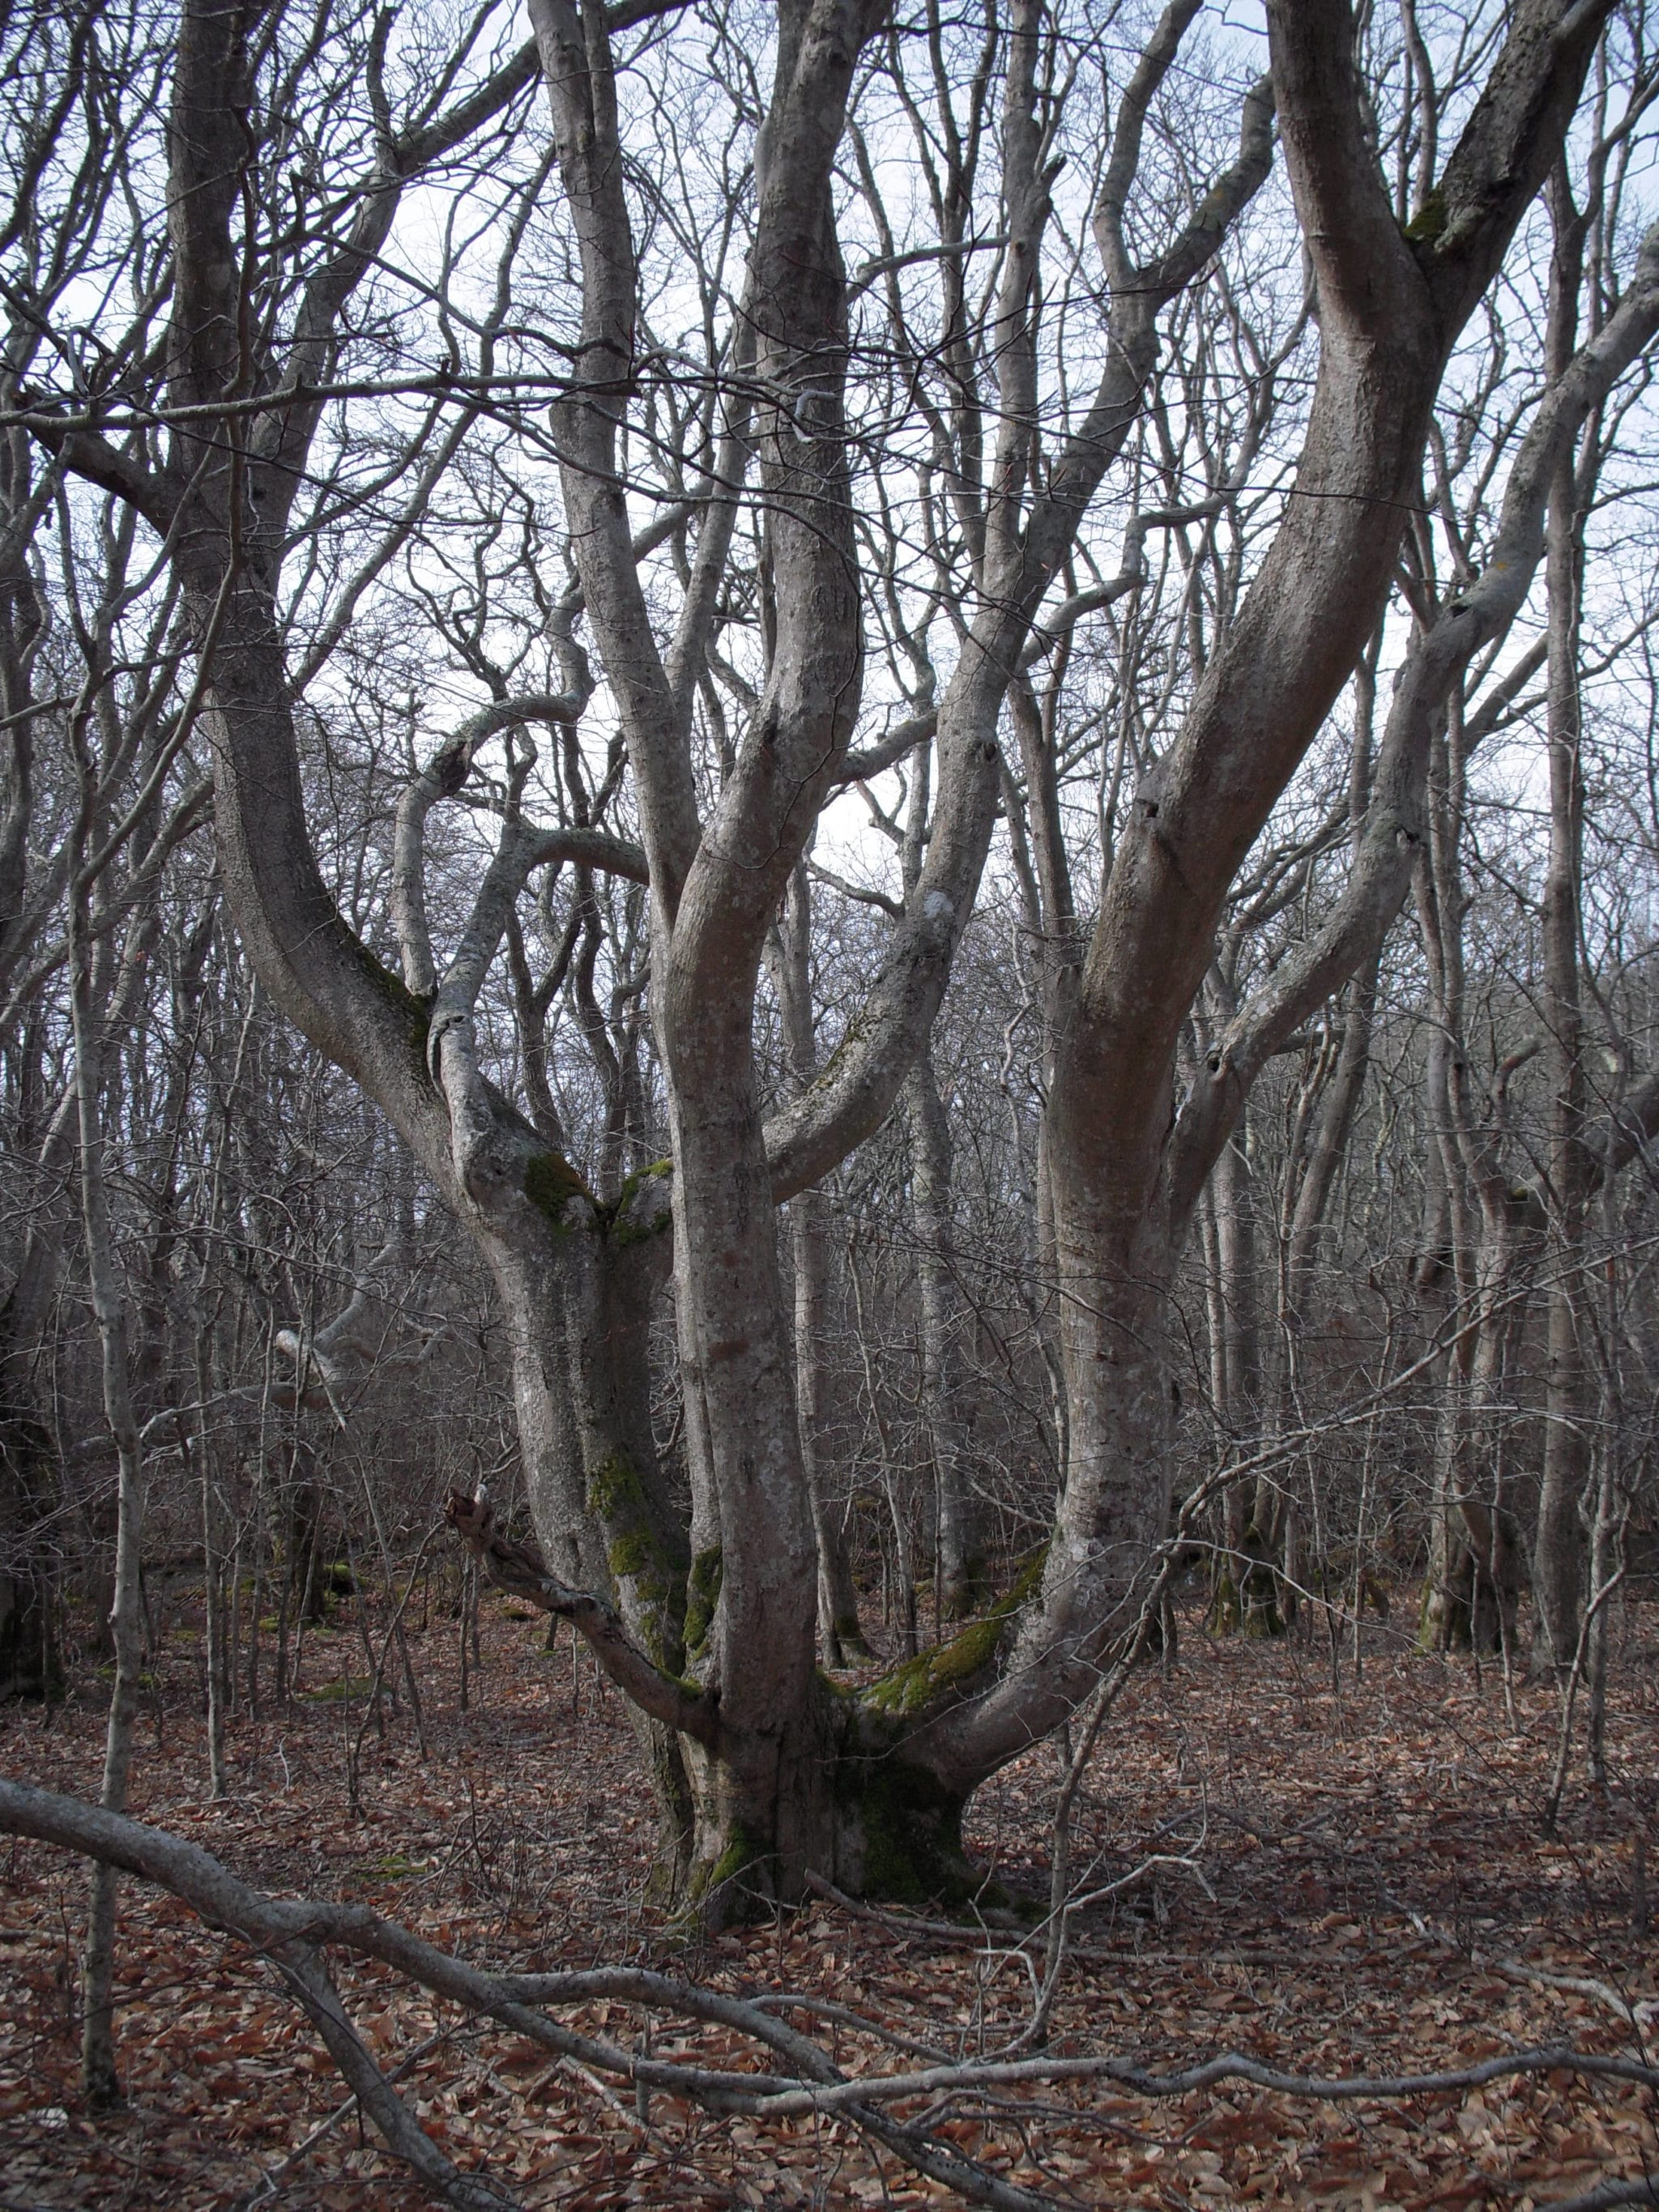 A large beech (Fagus grandifolia) at Squam, with the typical island shape to withstand our windy conditions.